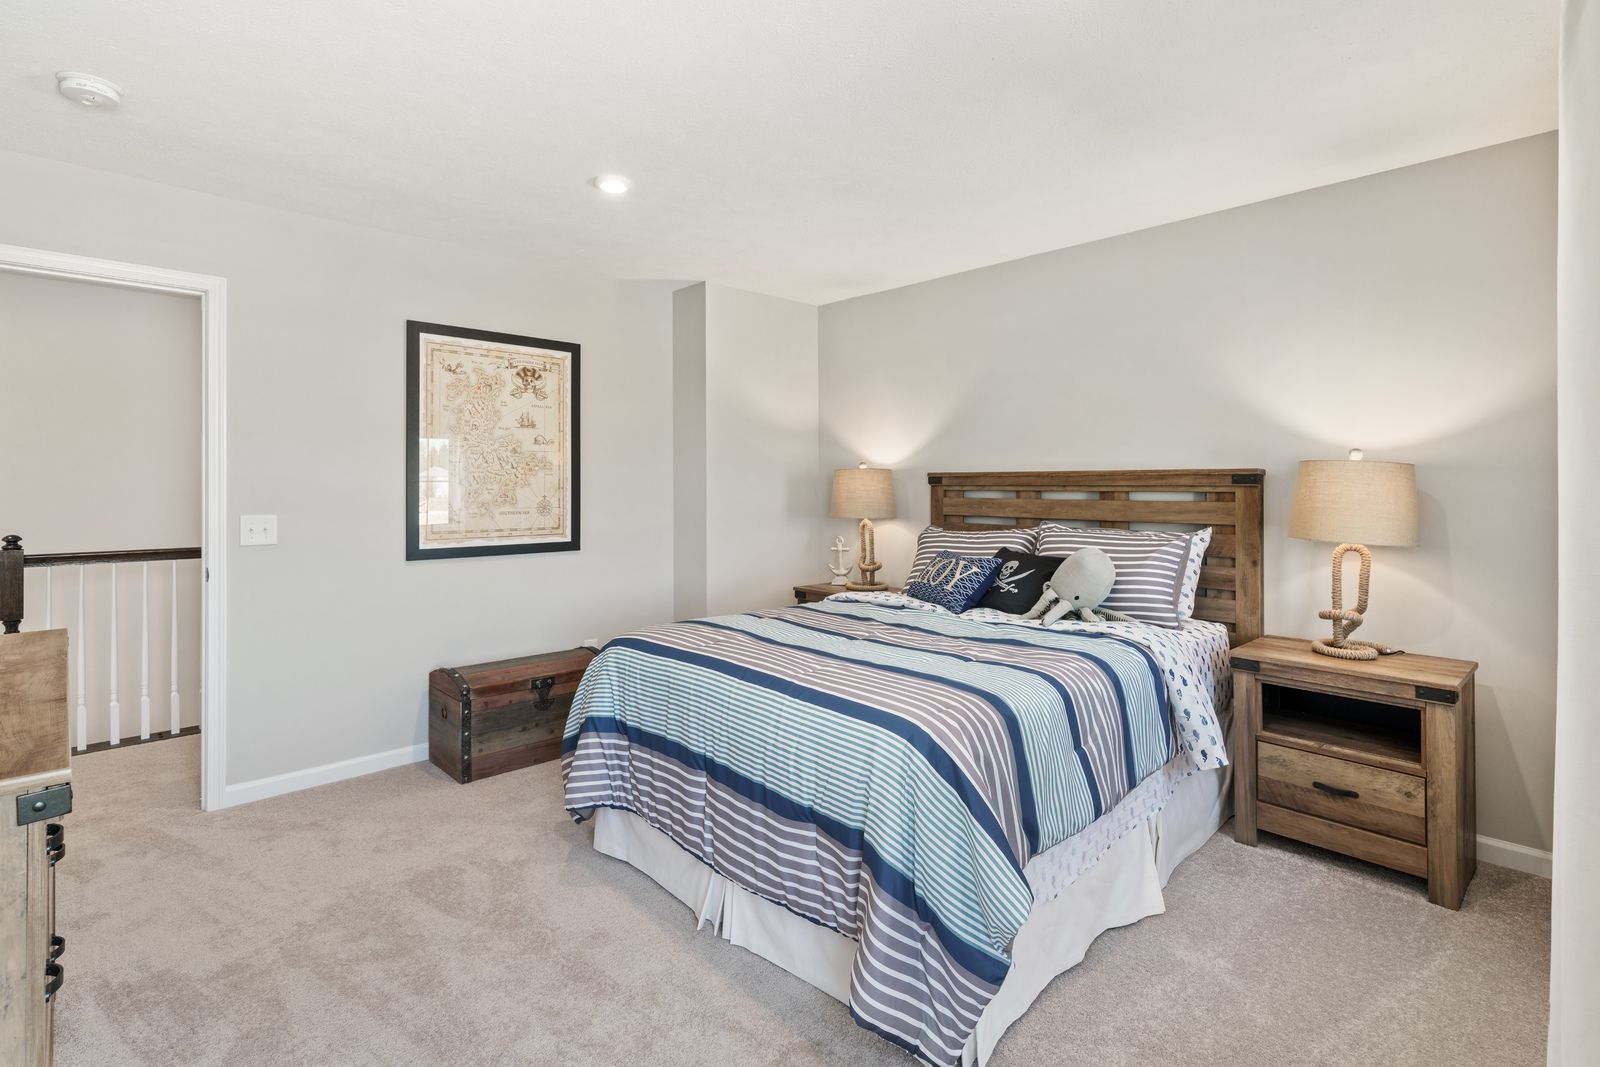 Bedroom featured in the Rosecliff By Ryan Homes in Nashville, TN